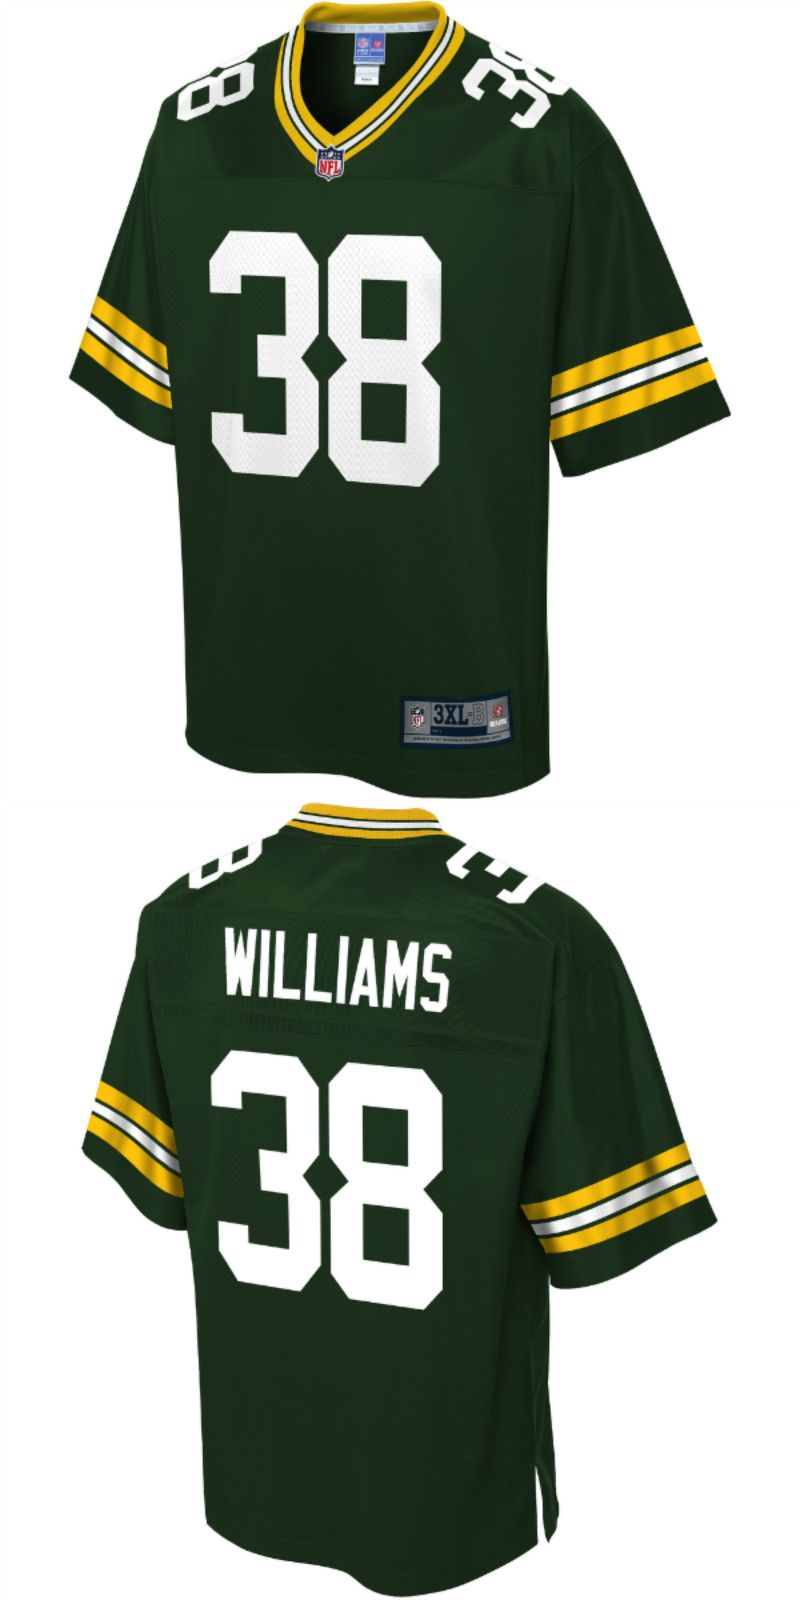 innovative design b592e 3e71d UP TO 70% OFF. Tramon Williams Green Bay Packers NFL Pro ...